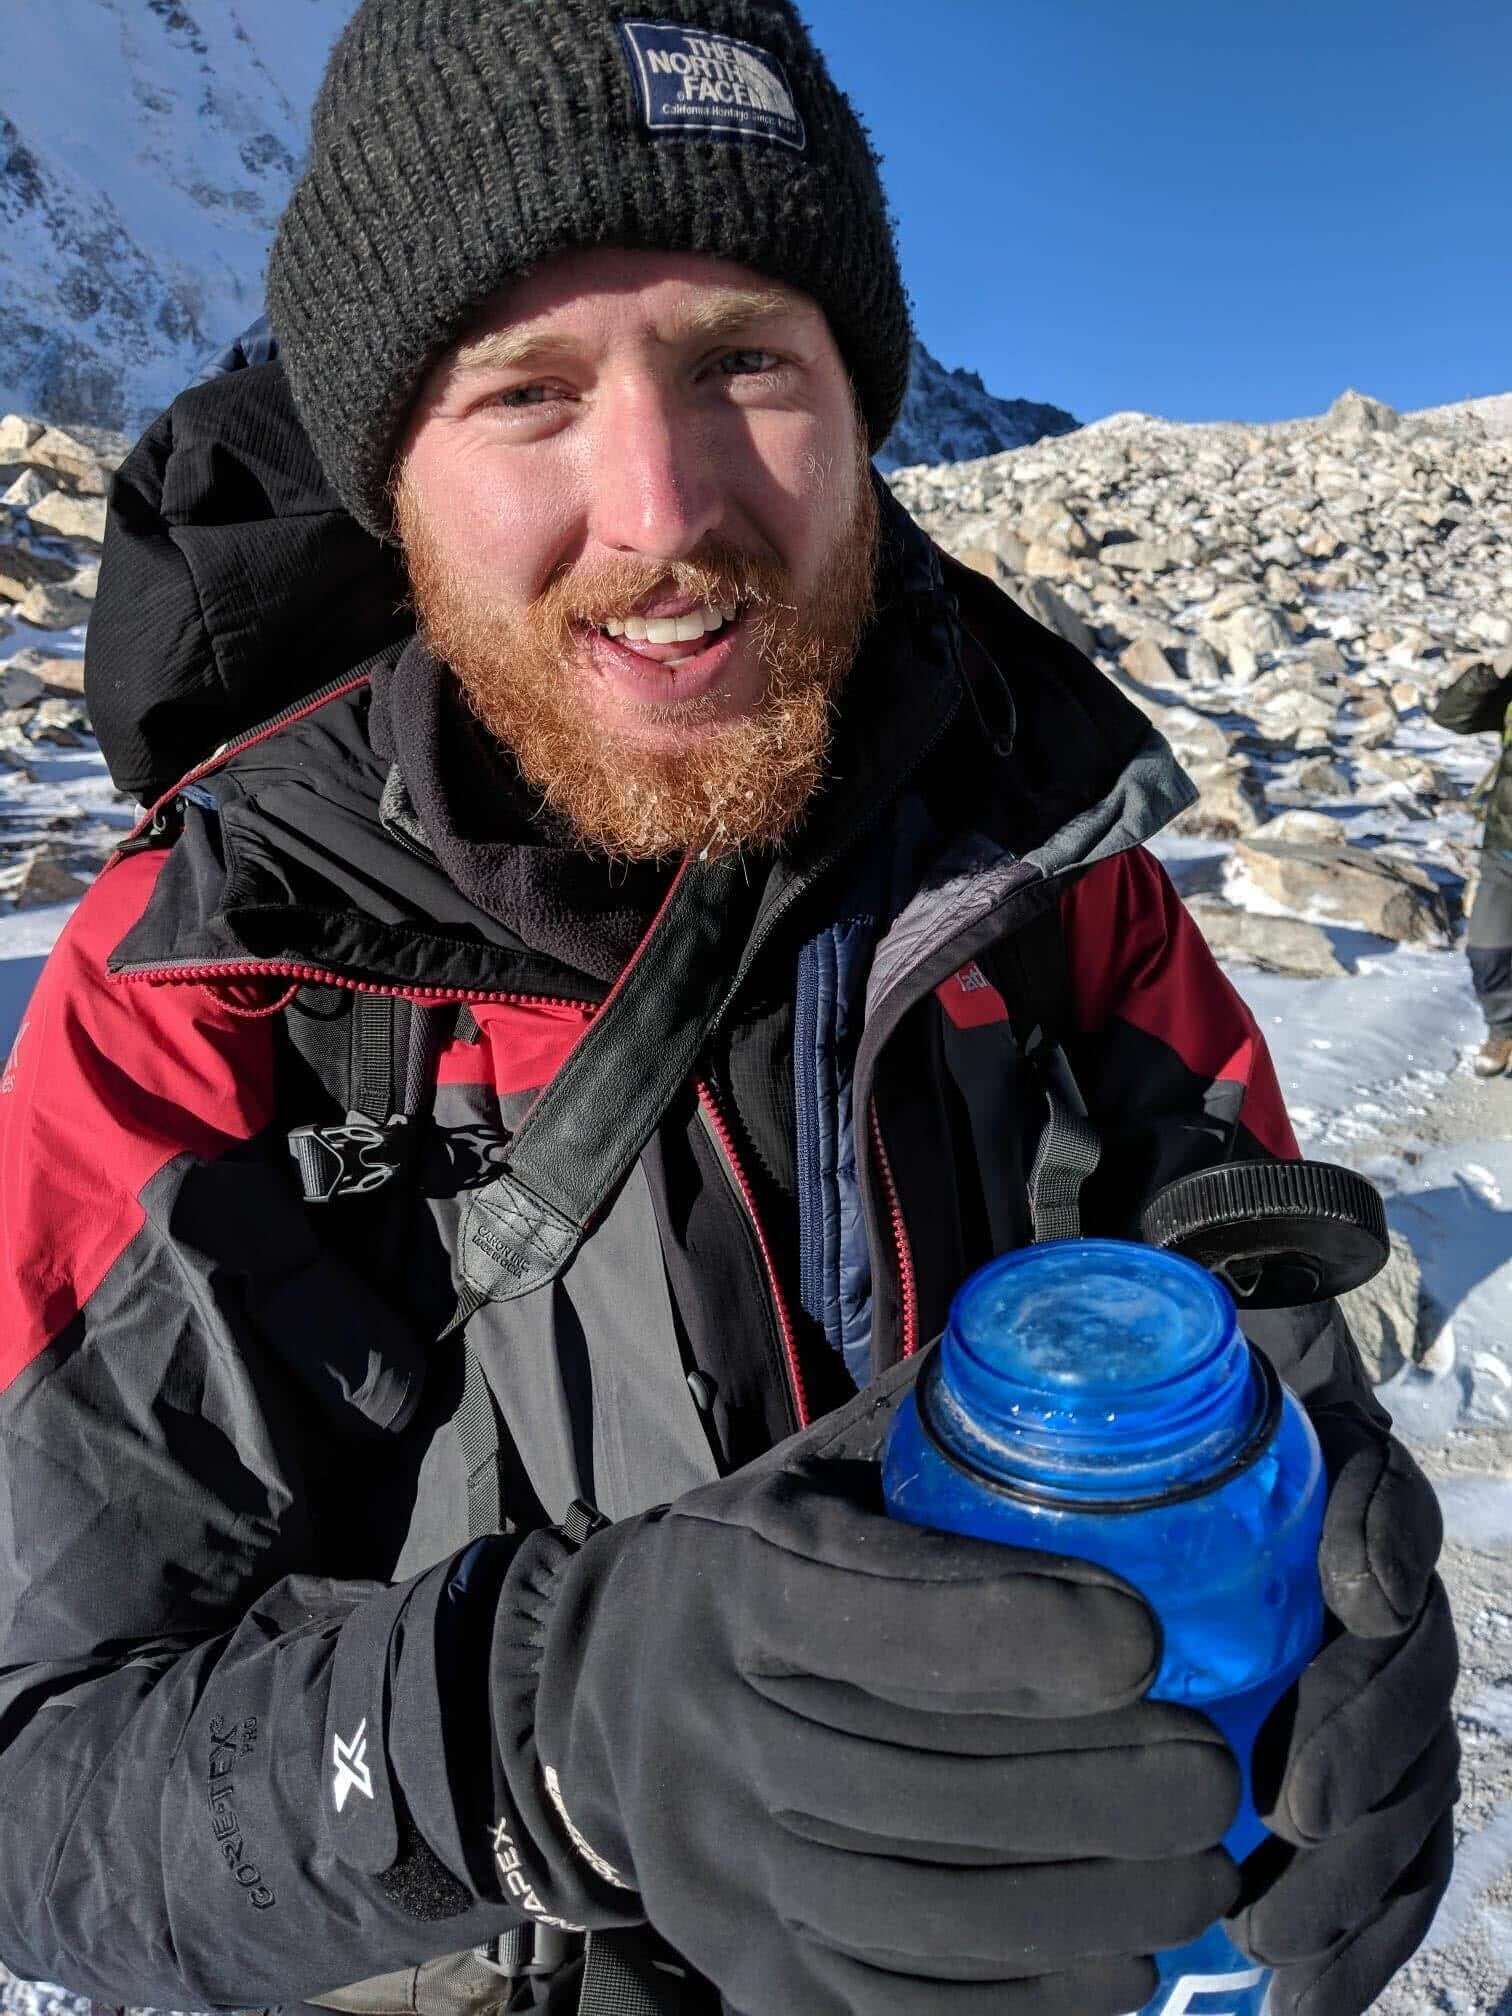 Tim with his frozen Nalgene water bottle